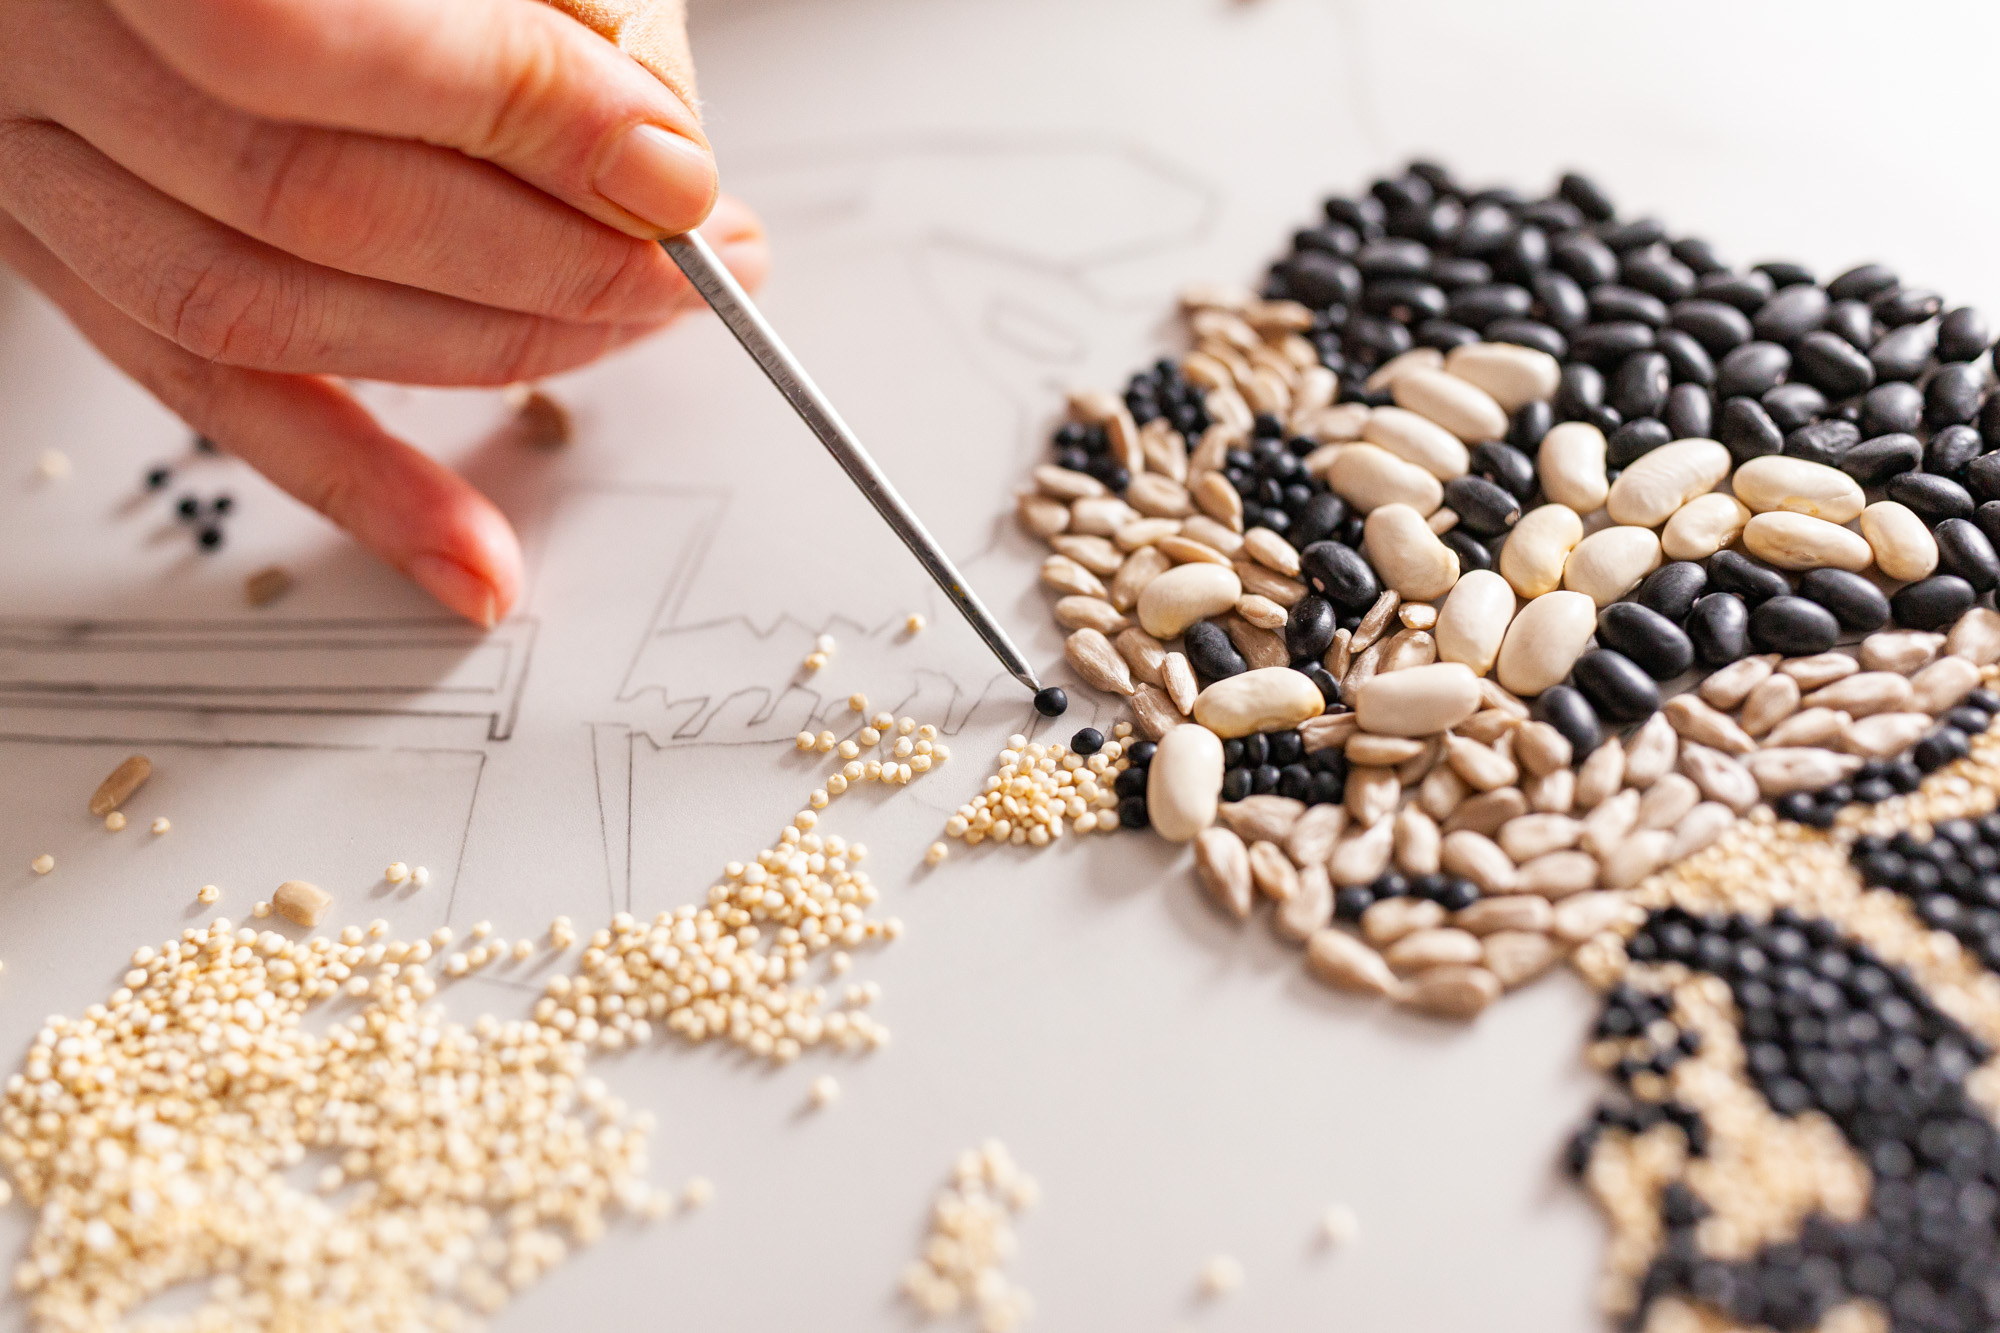 Behind the scenes photo of the vegan propaganda production. A photo studio is shown with a food stylist laying out several seeds, peas and legumes to form the stilyzed image of a man.